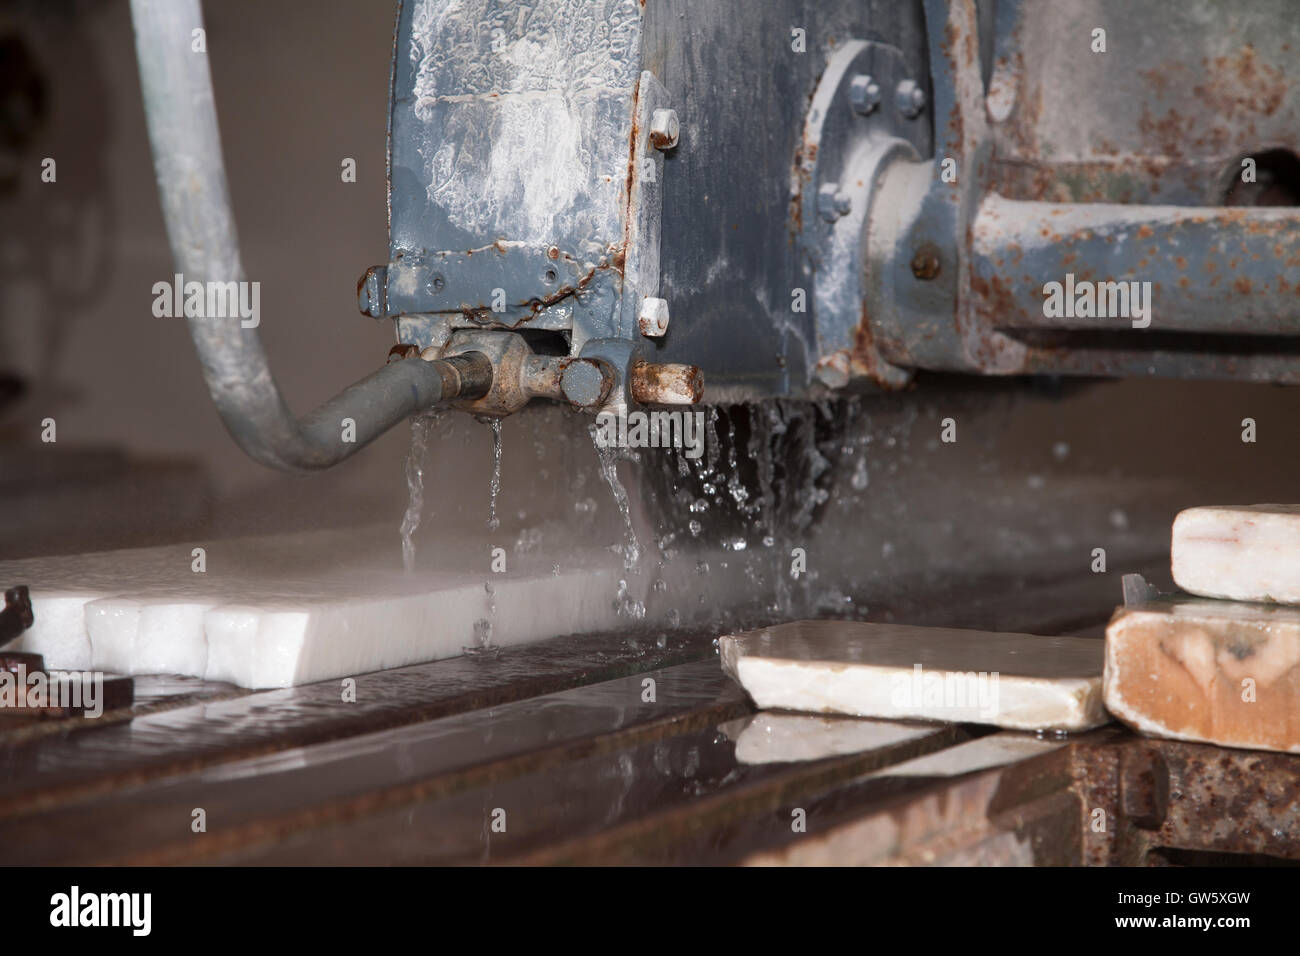 Water cooled saw cutting marble stone. Portugal - Stock Image